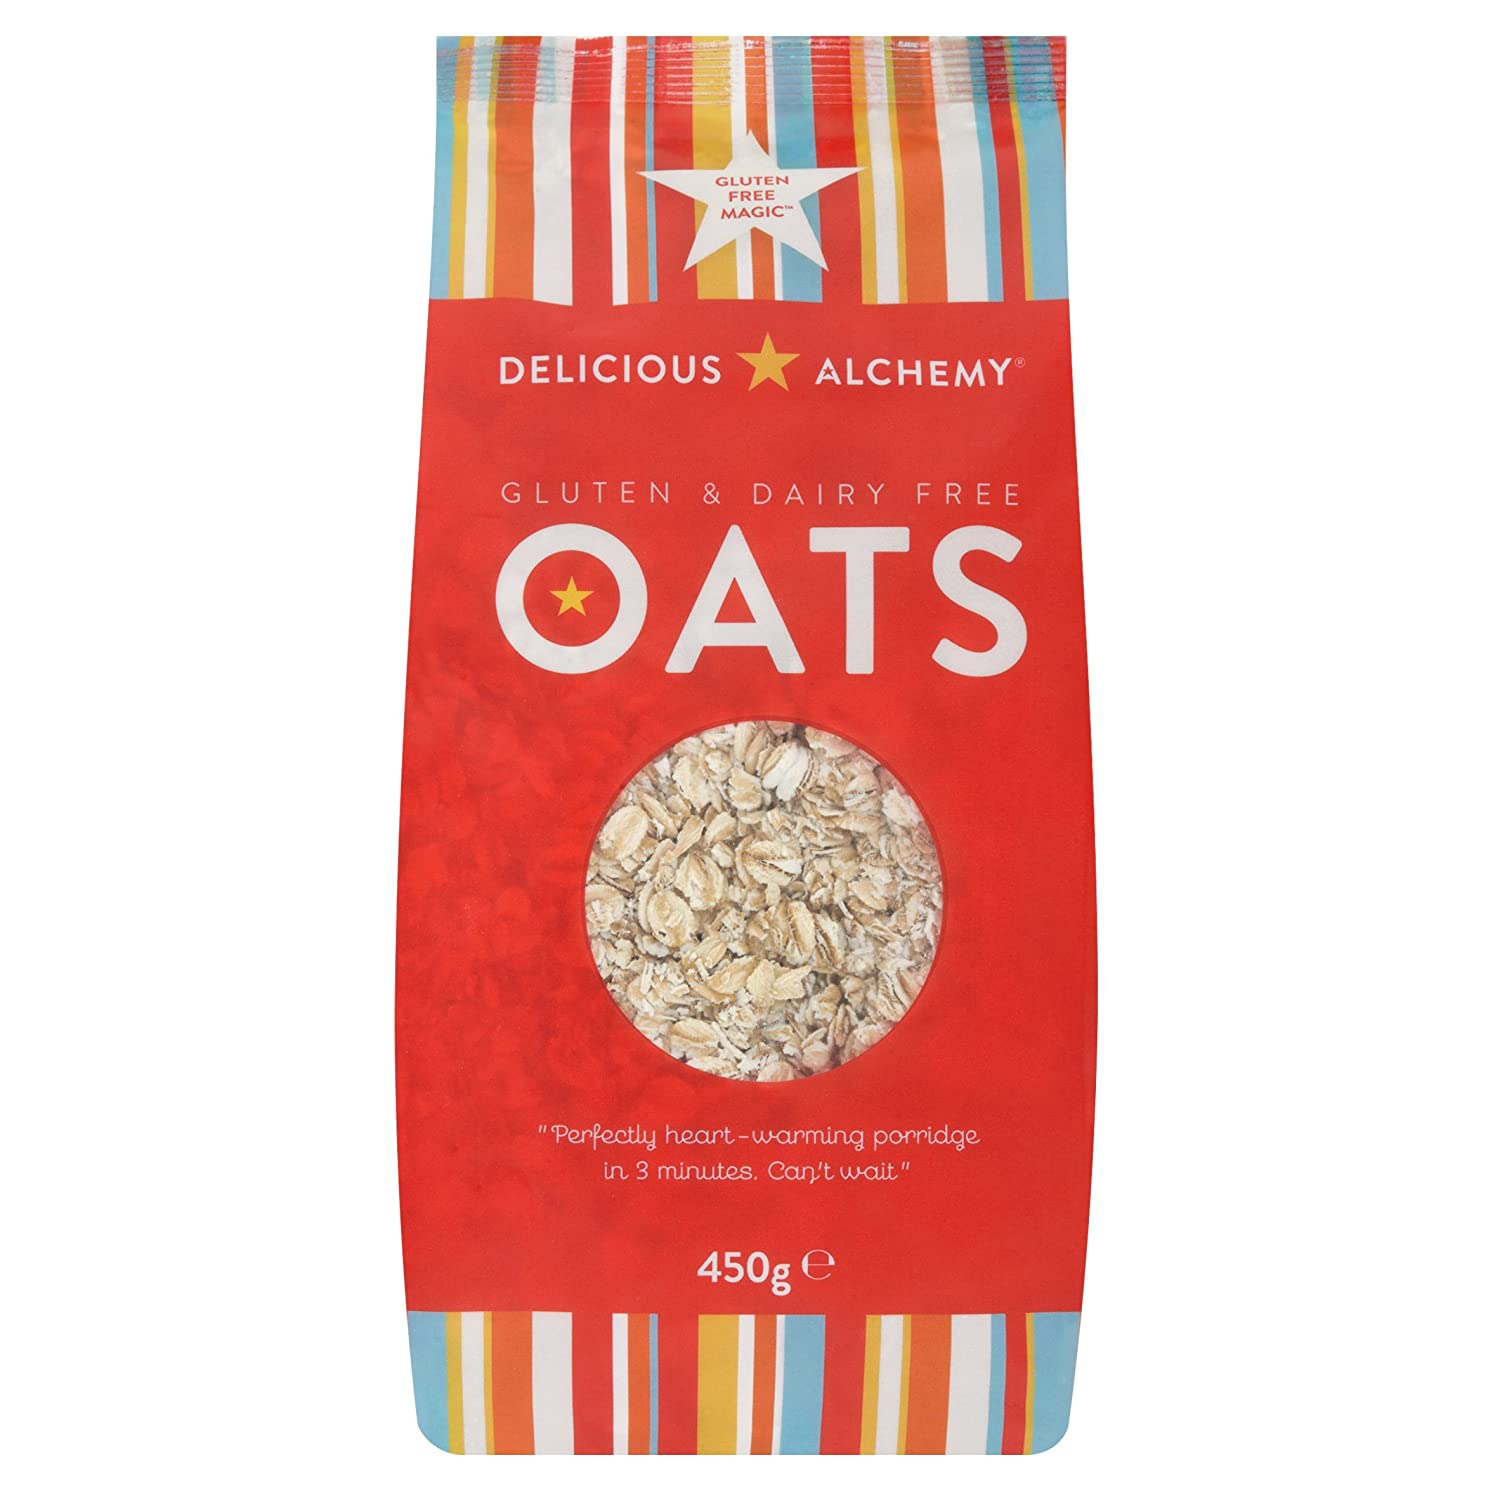 Delicious Alchemy - Gluten & Dairy Free Oats - 450g (Case of ...